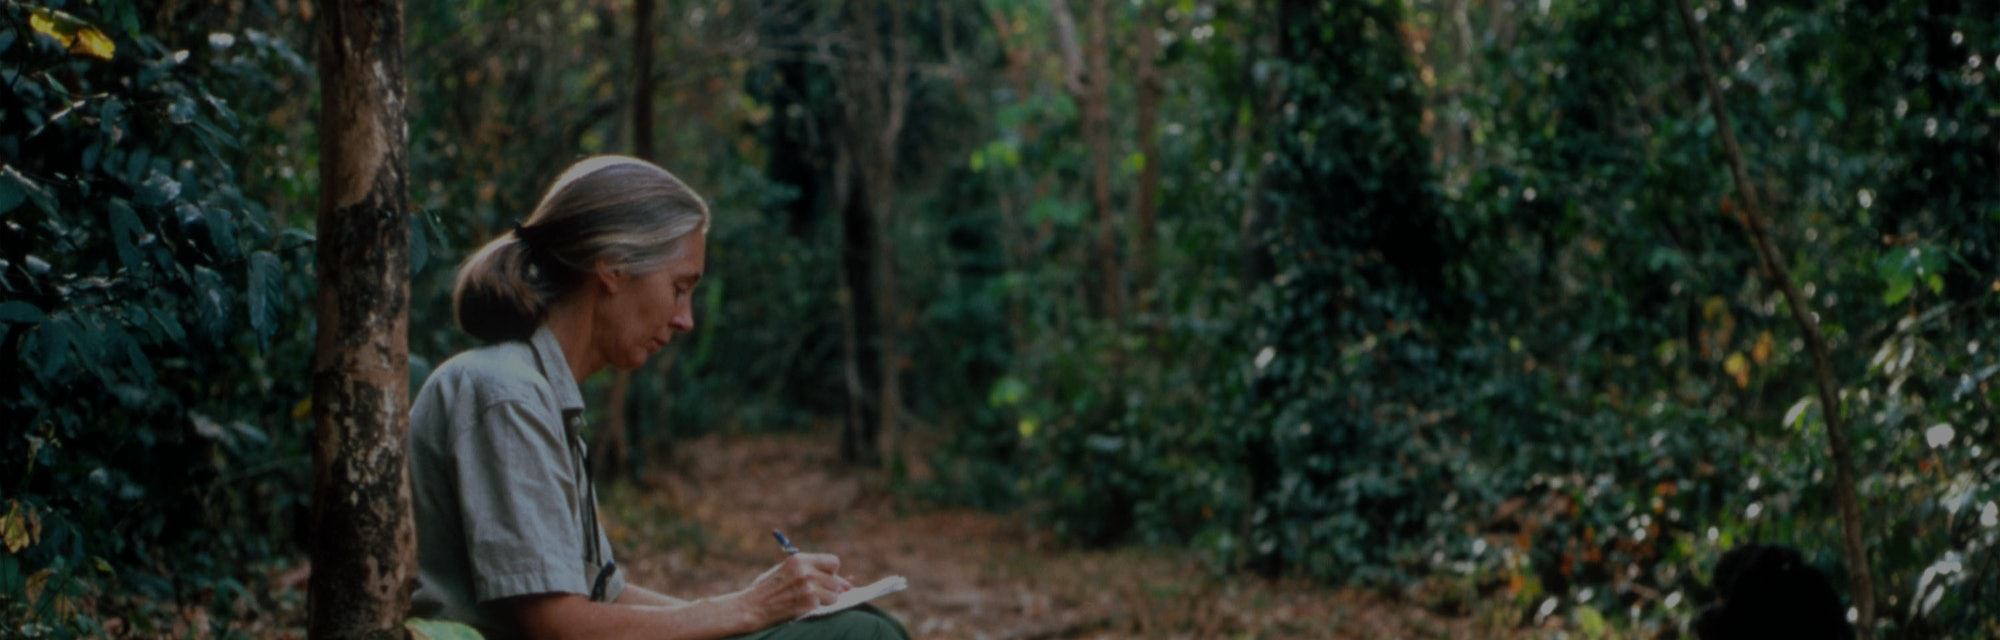 Scientist Jane Goodall studies the behavior of a chimpanzee during her research February 15, 1987 in...